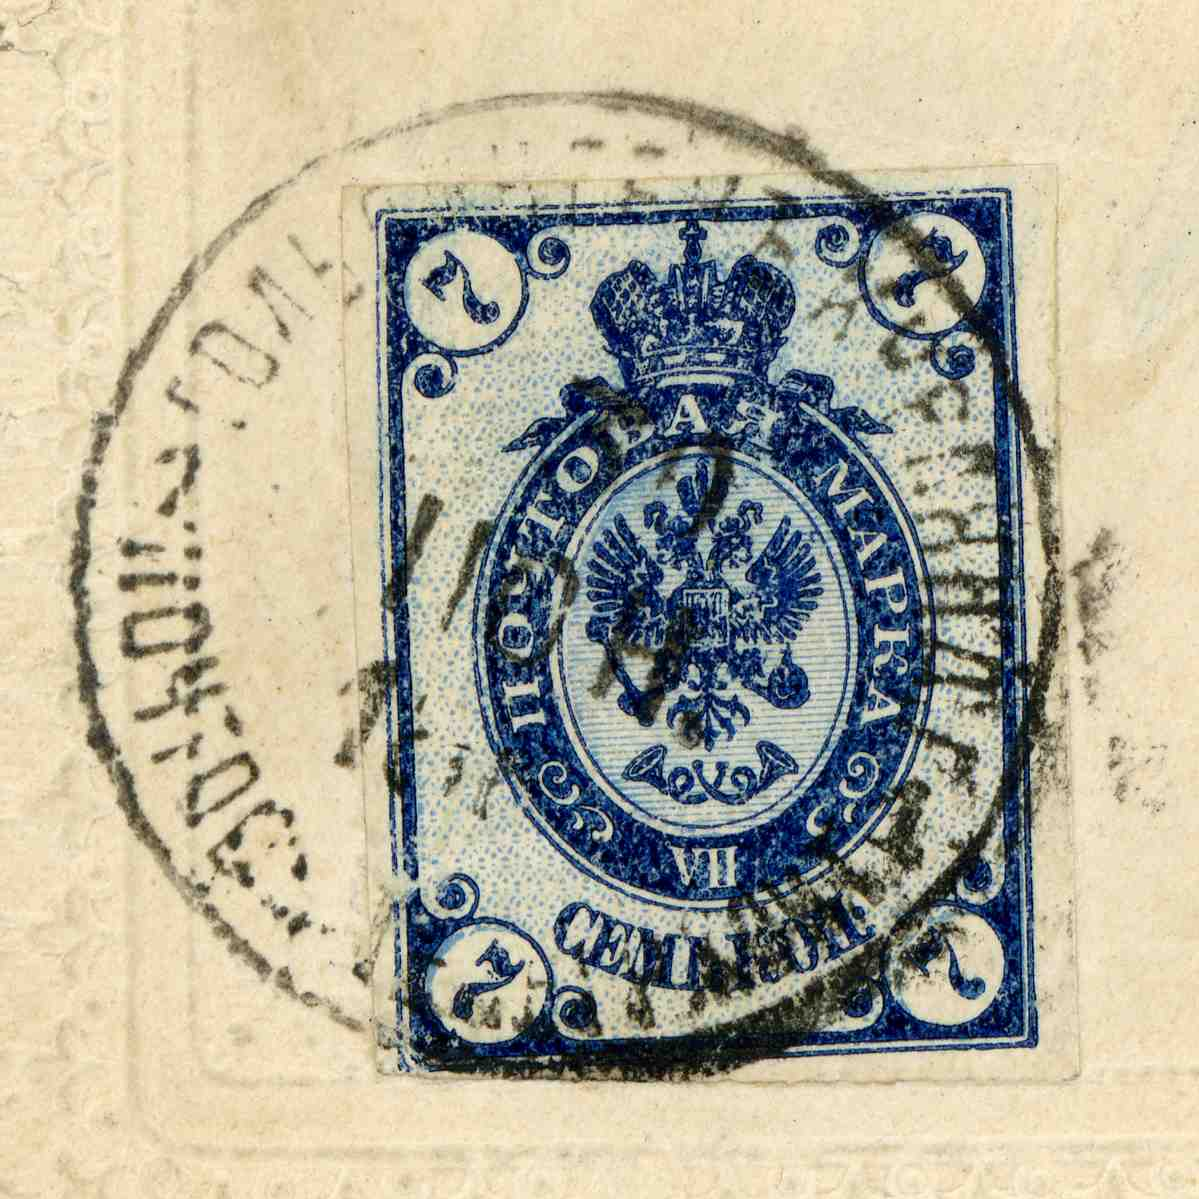 Large scan of the stamp